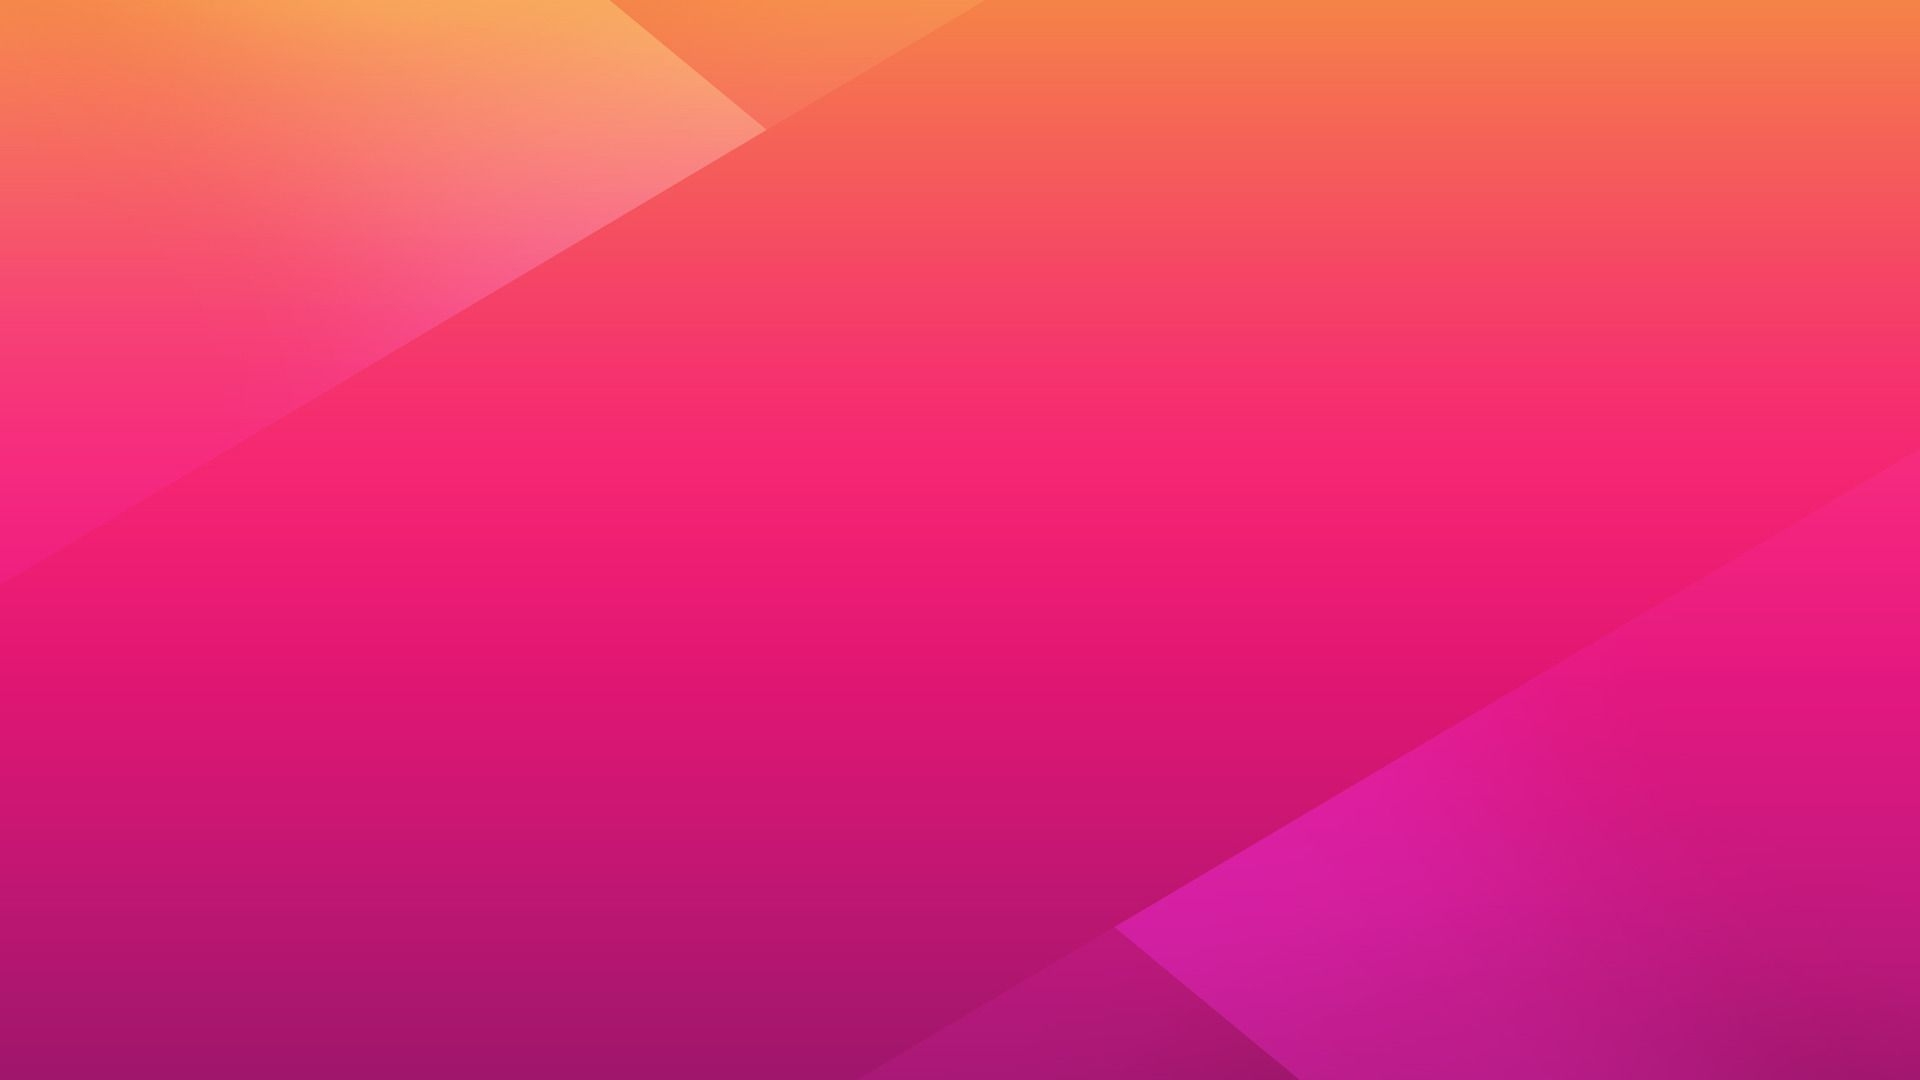 Pink Tiles Gradient Background